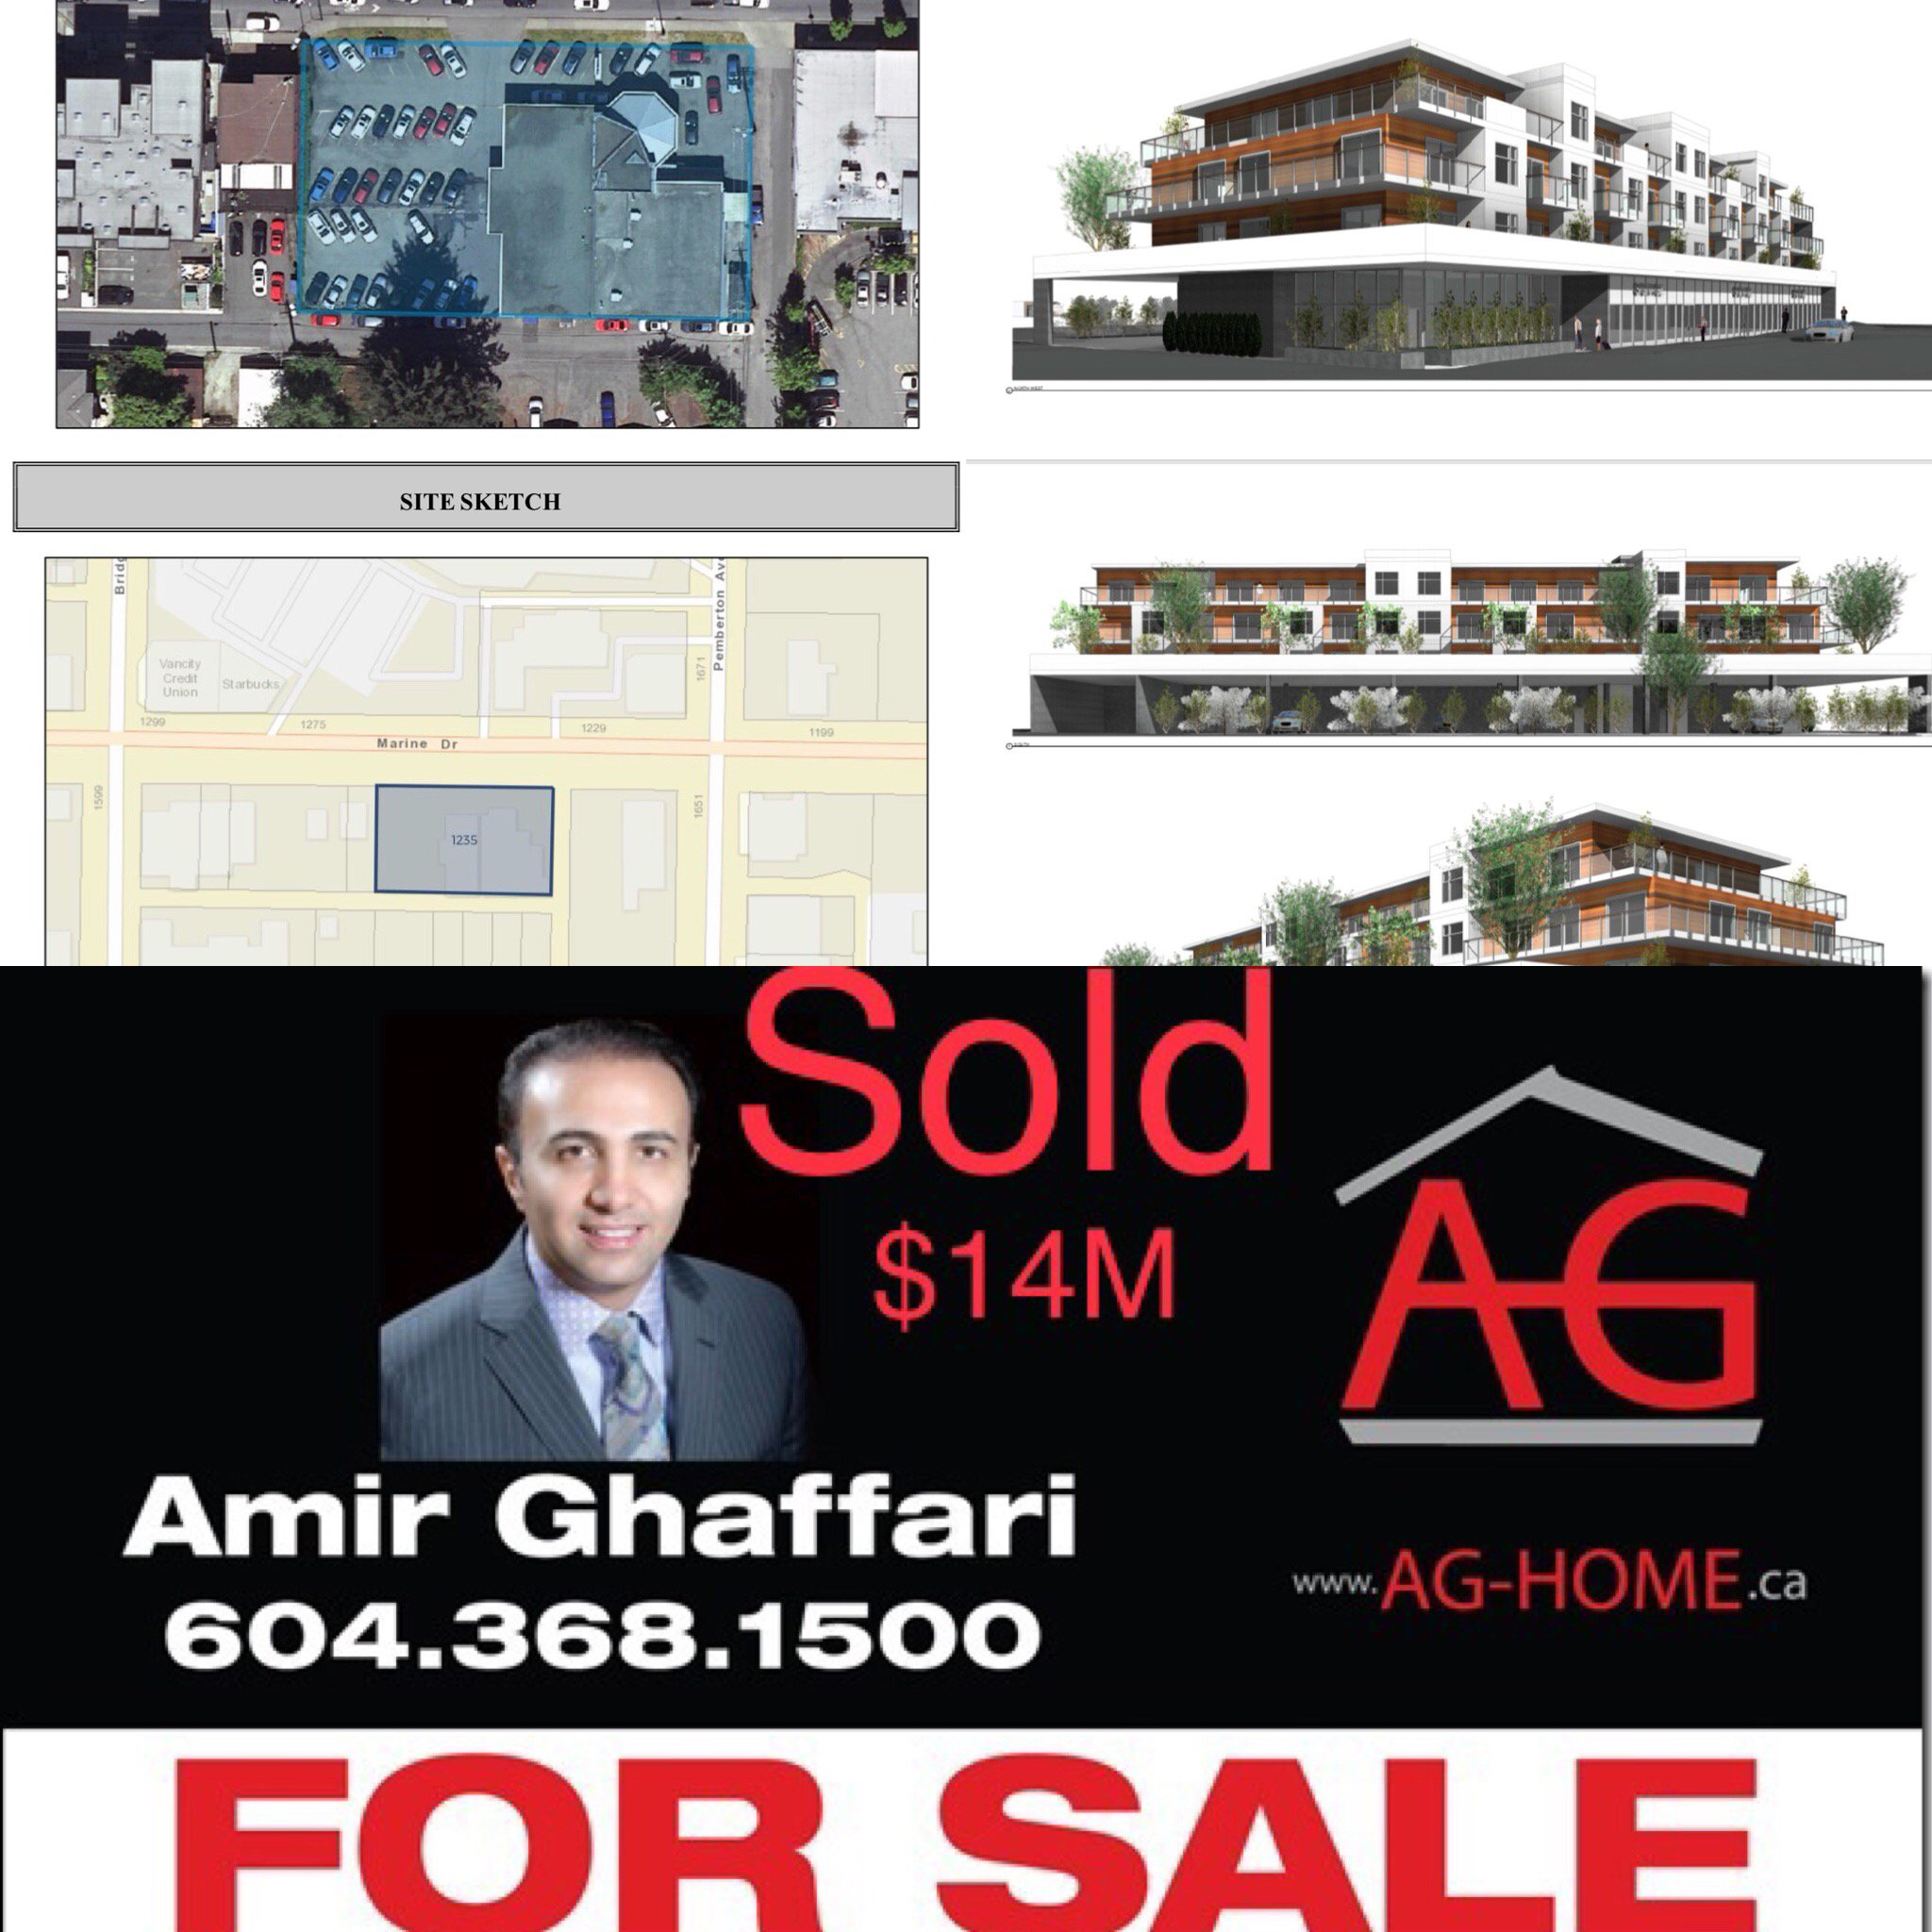 Main Photo: 1235 Marine Dr in North Vancouver: Norgate Land Commercial for sale